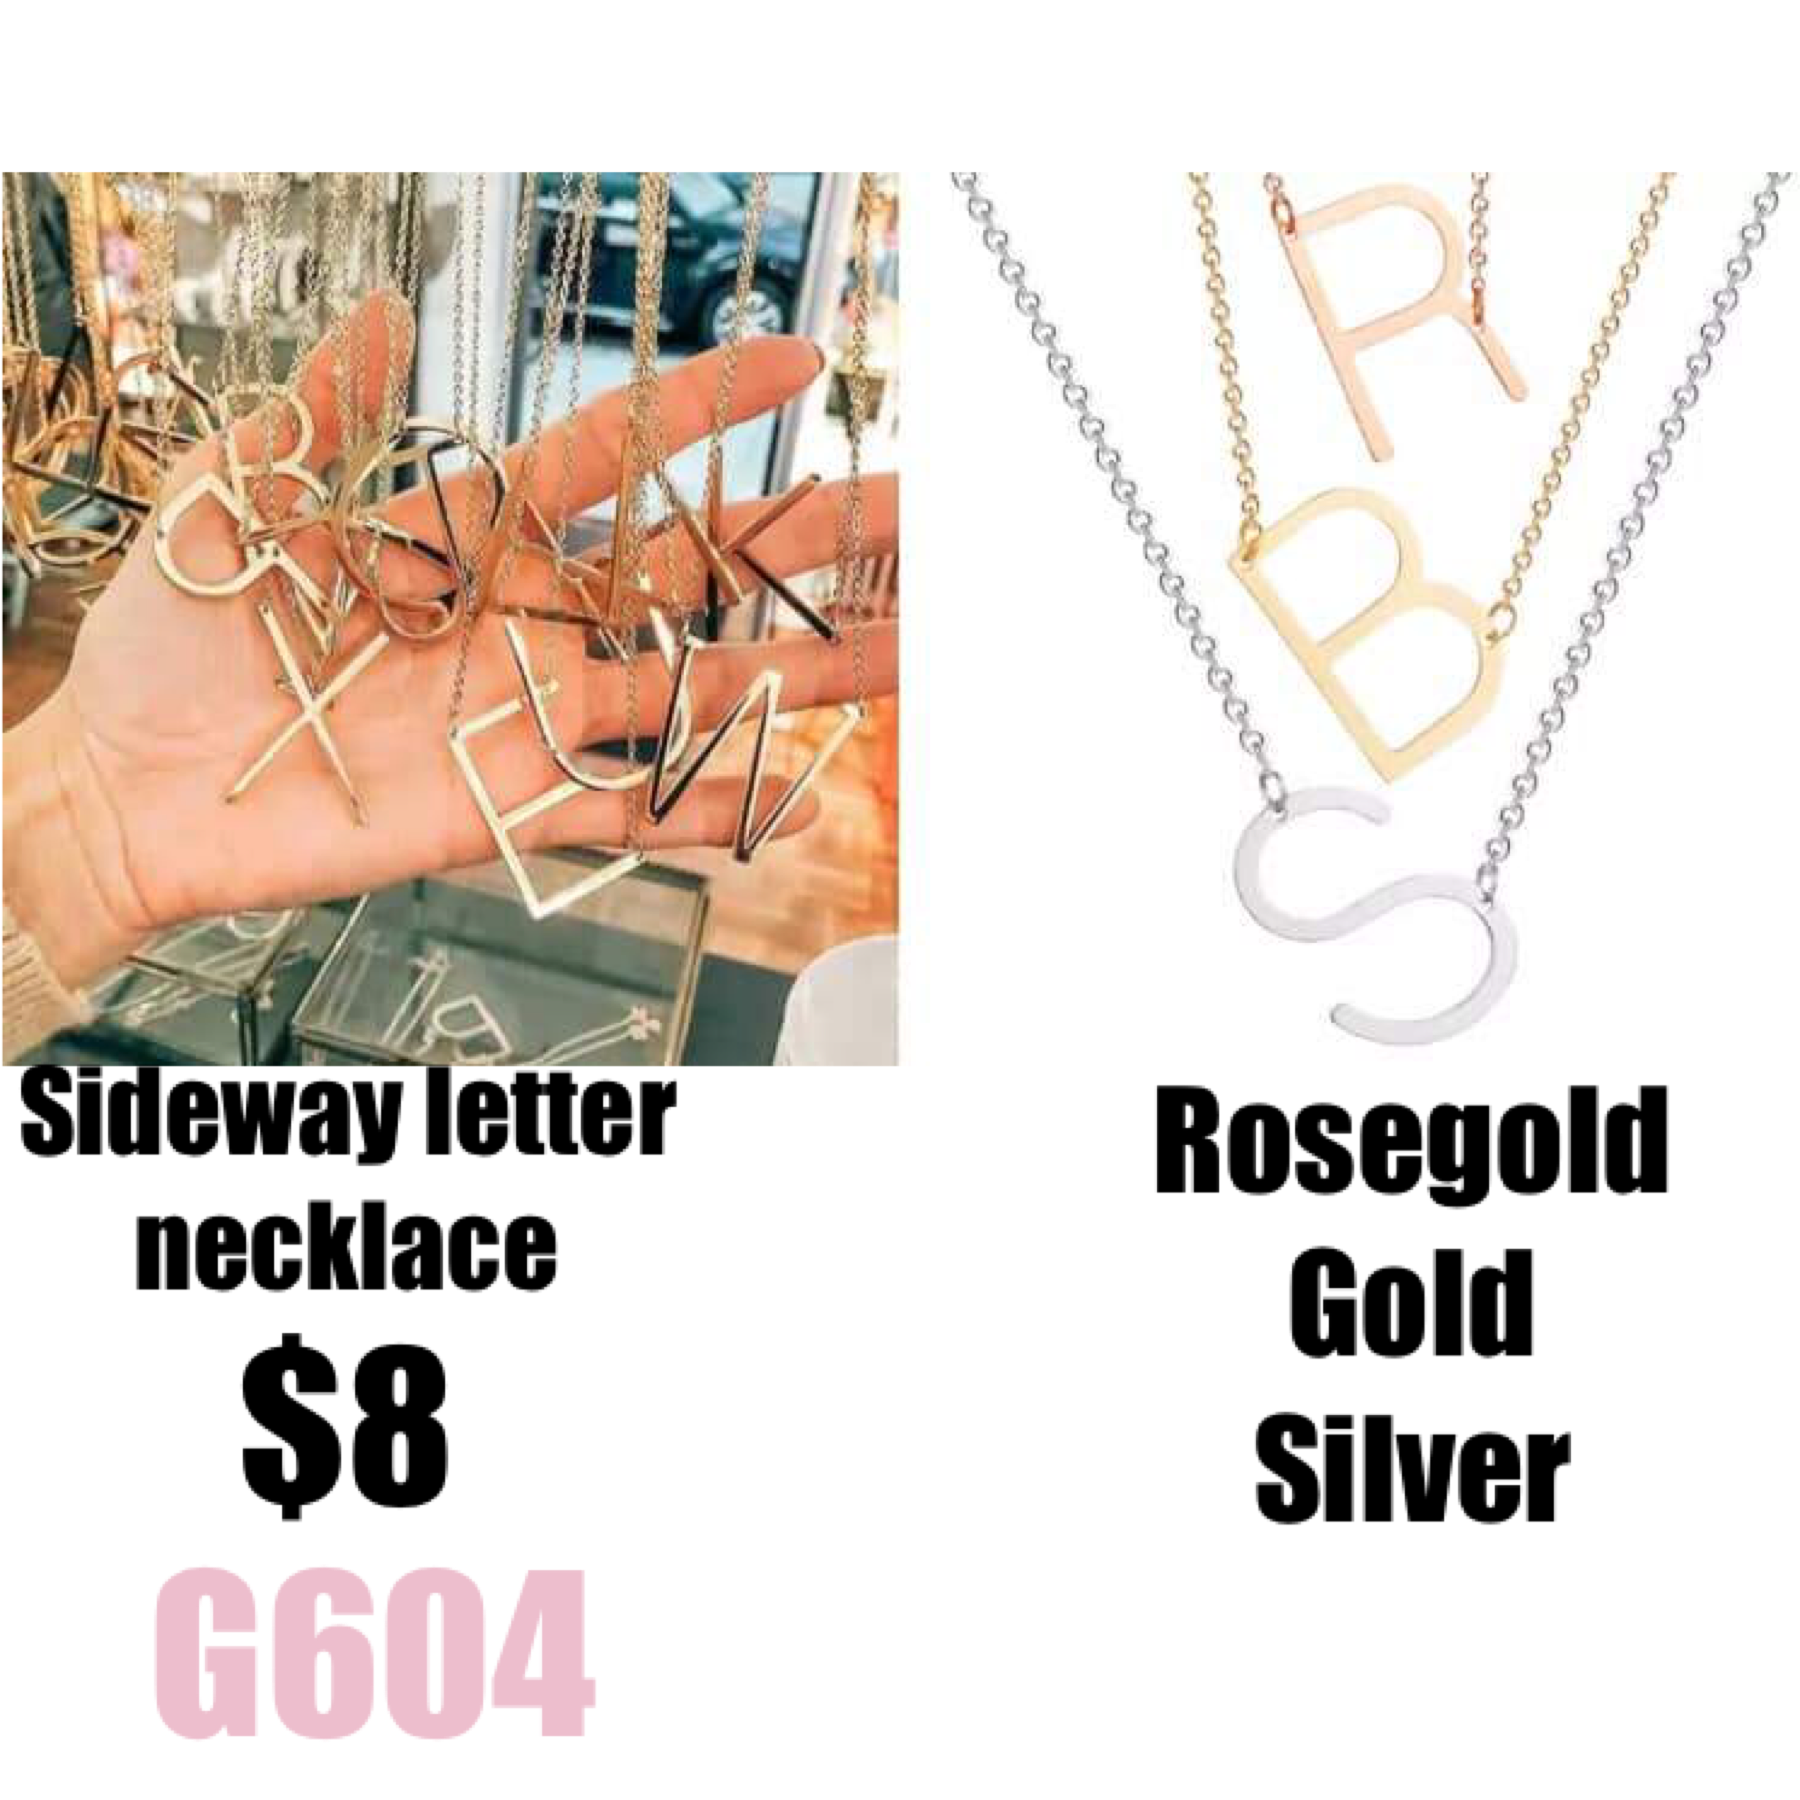 Side Way Letter Necklace (G604)